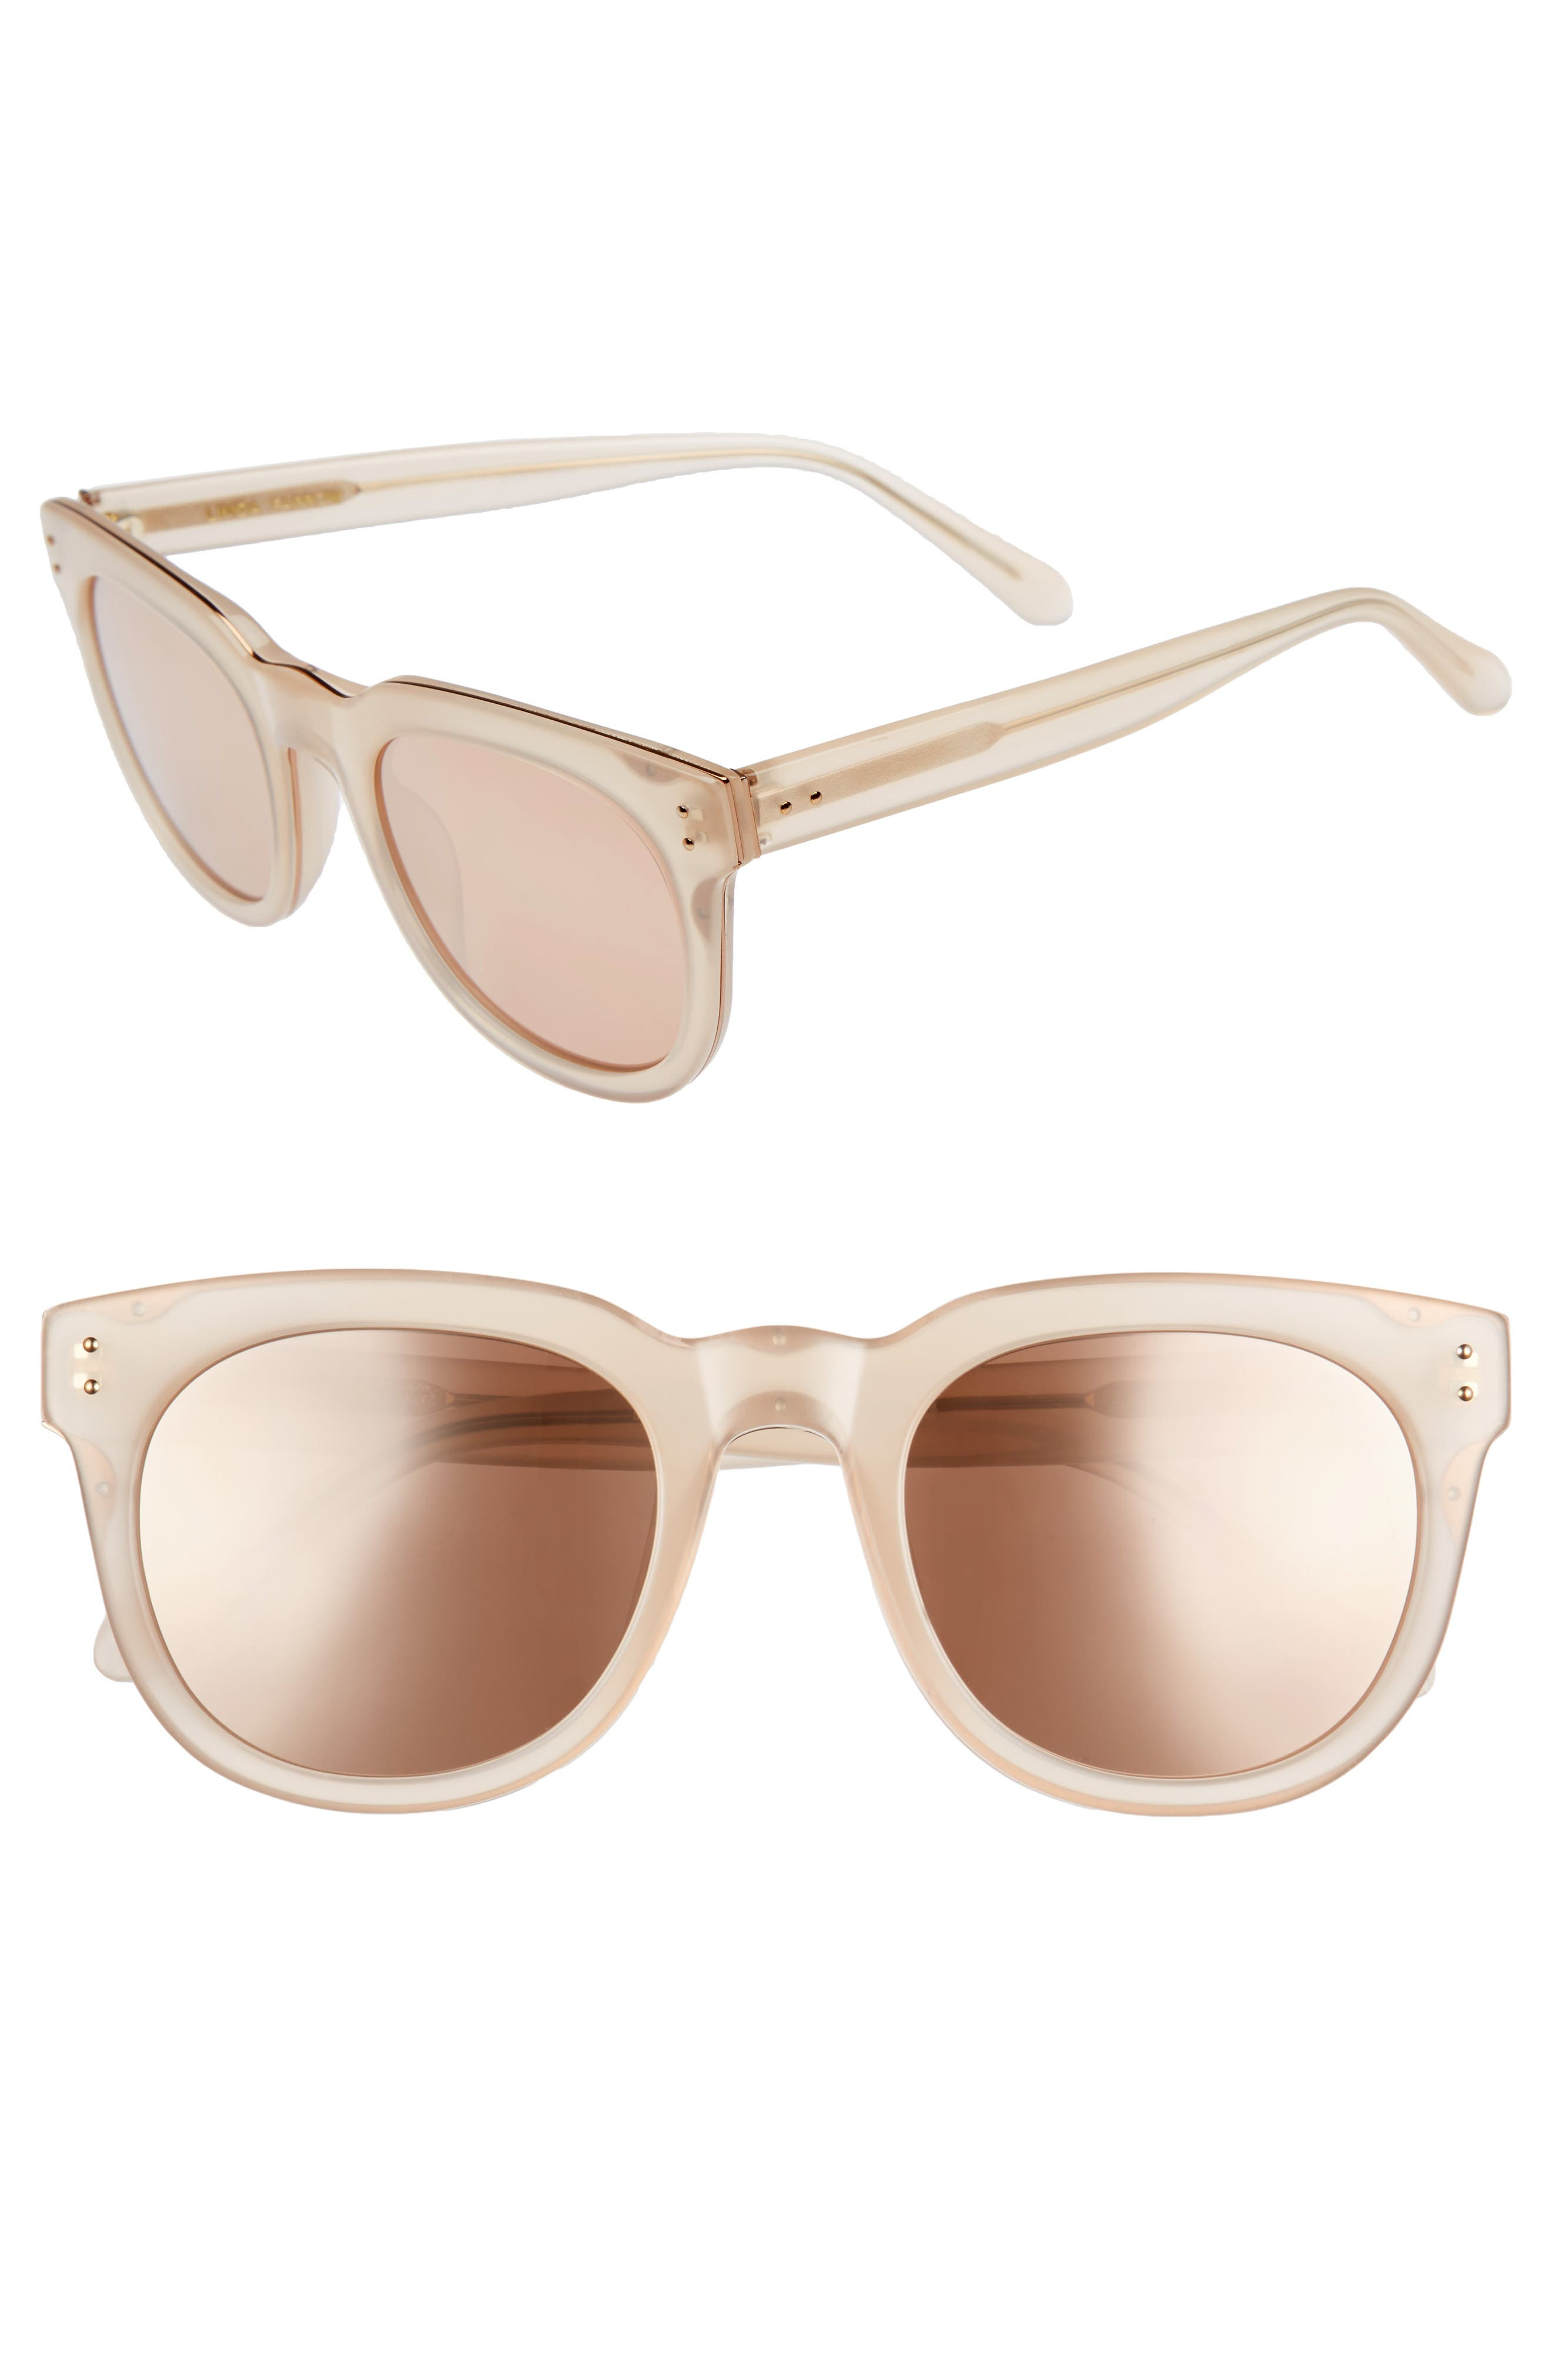 50mm D-Frame Mirrored Sunglasses,                             Main thumbnail 1, color,                             950